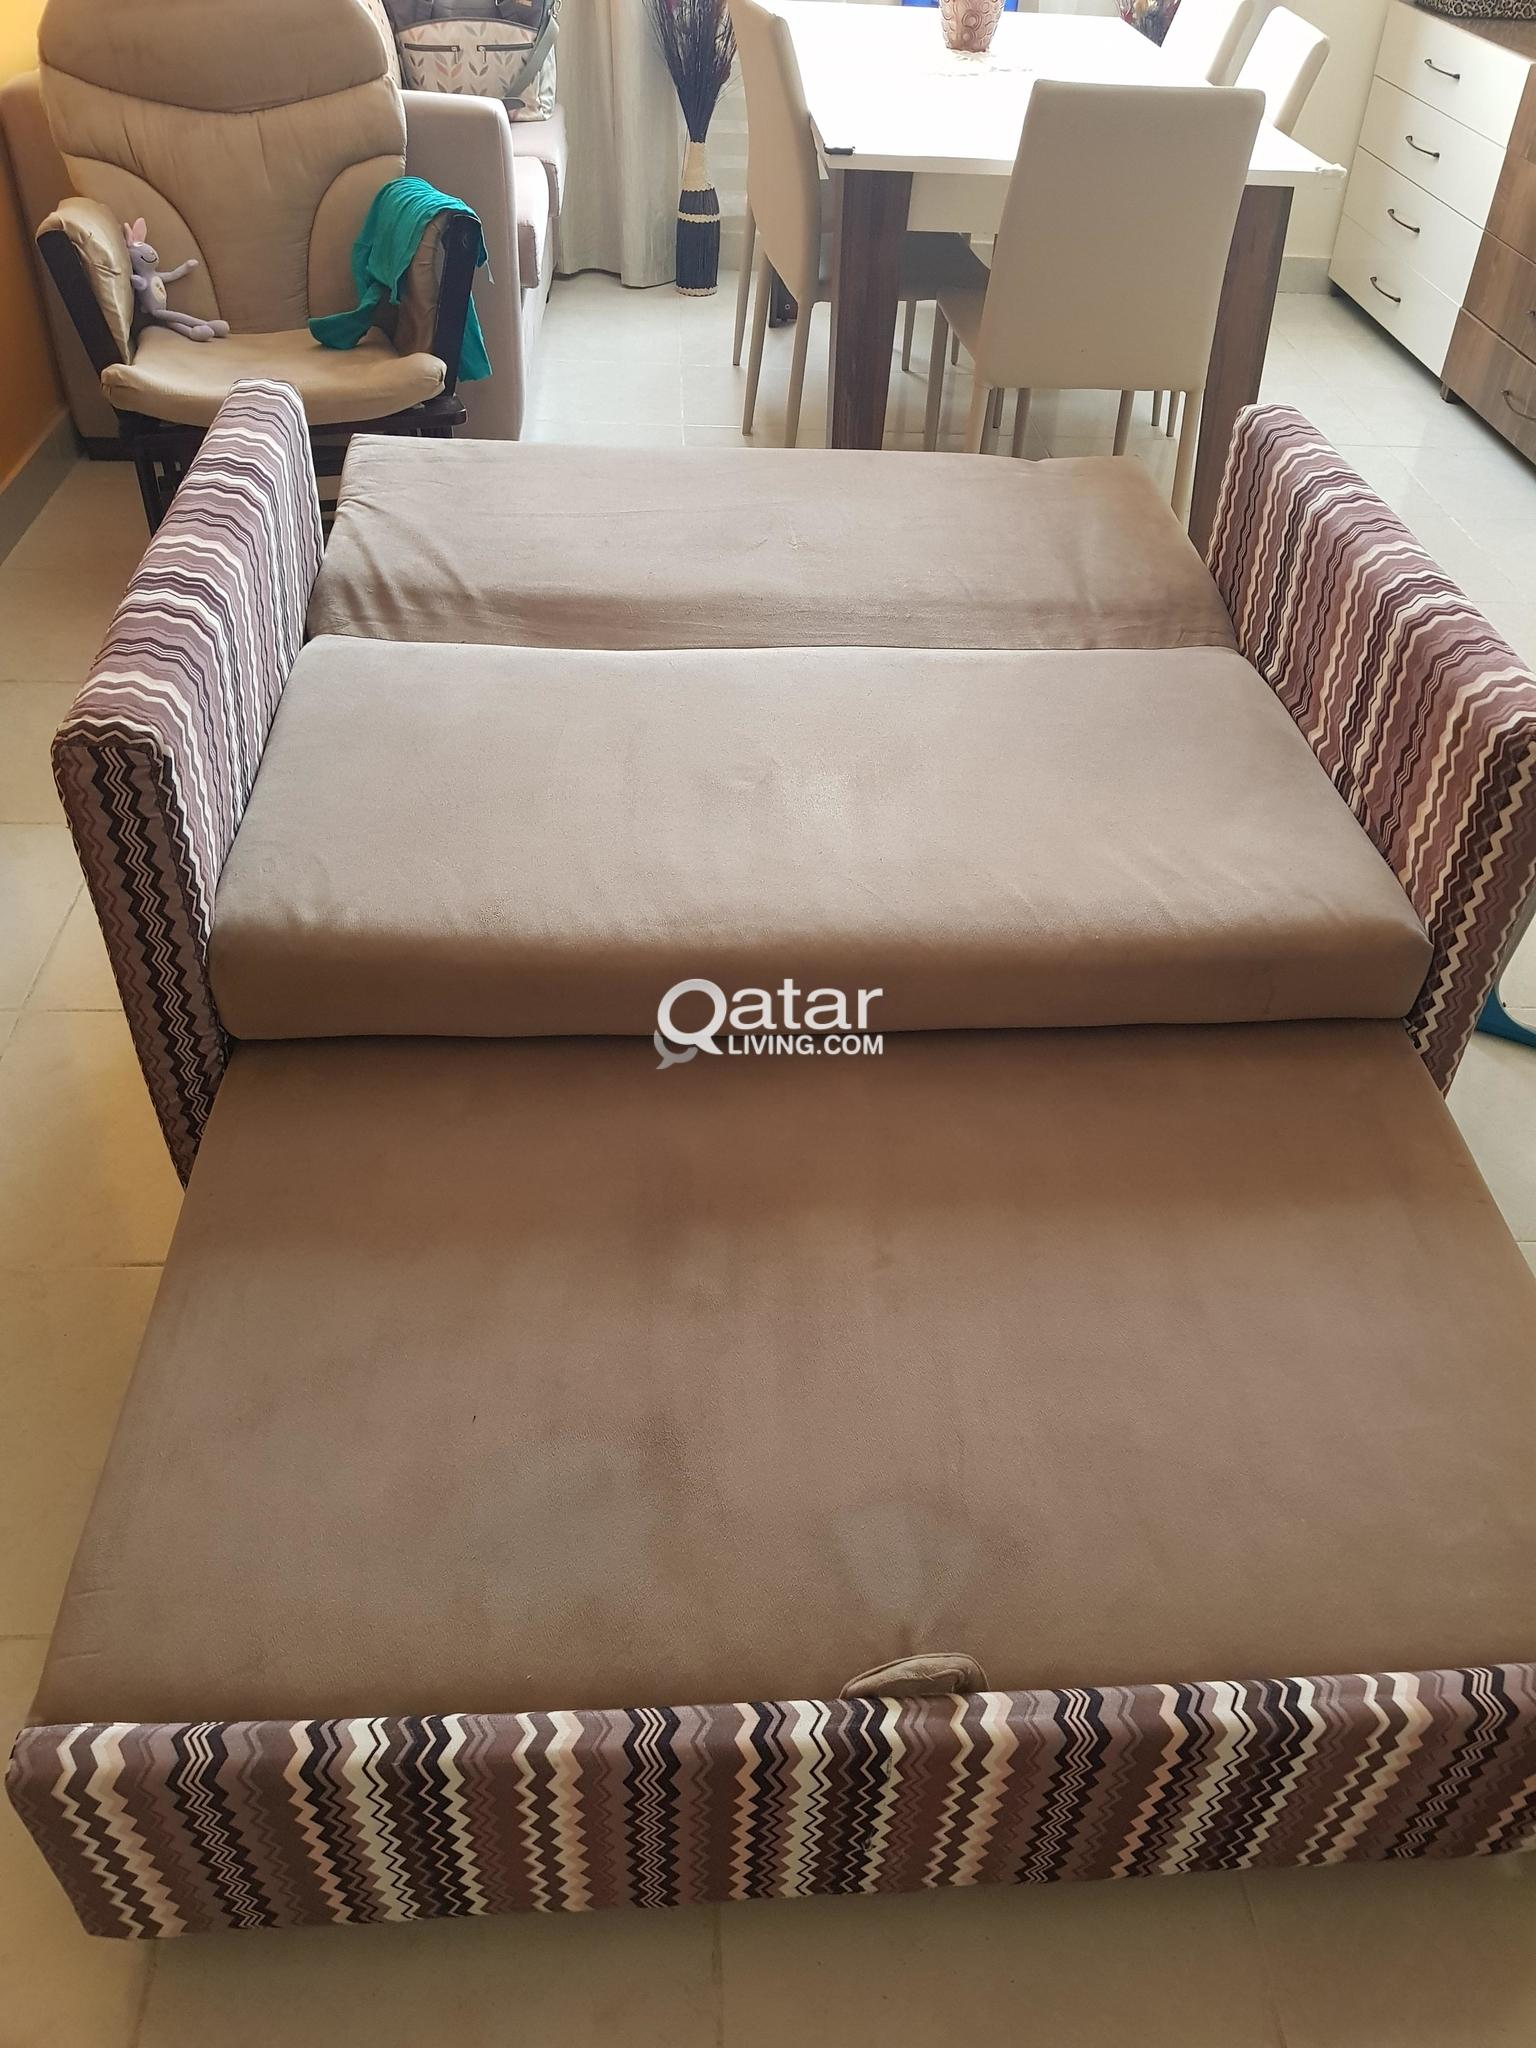 Expandable Sofa Qatar Living